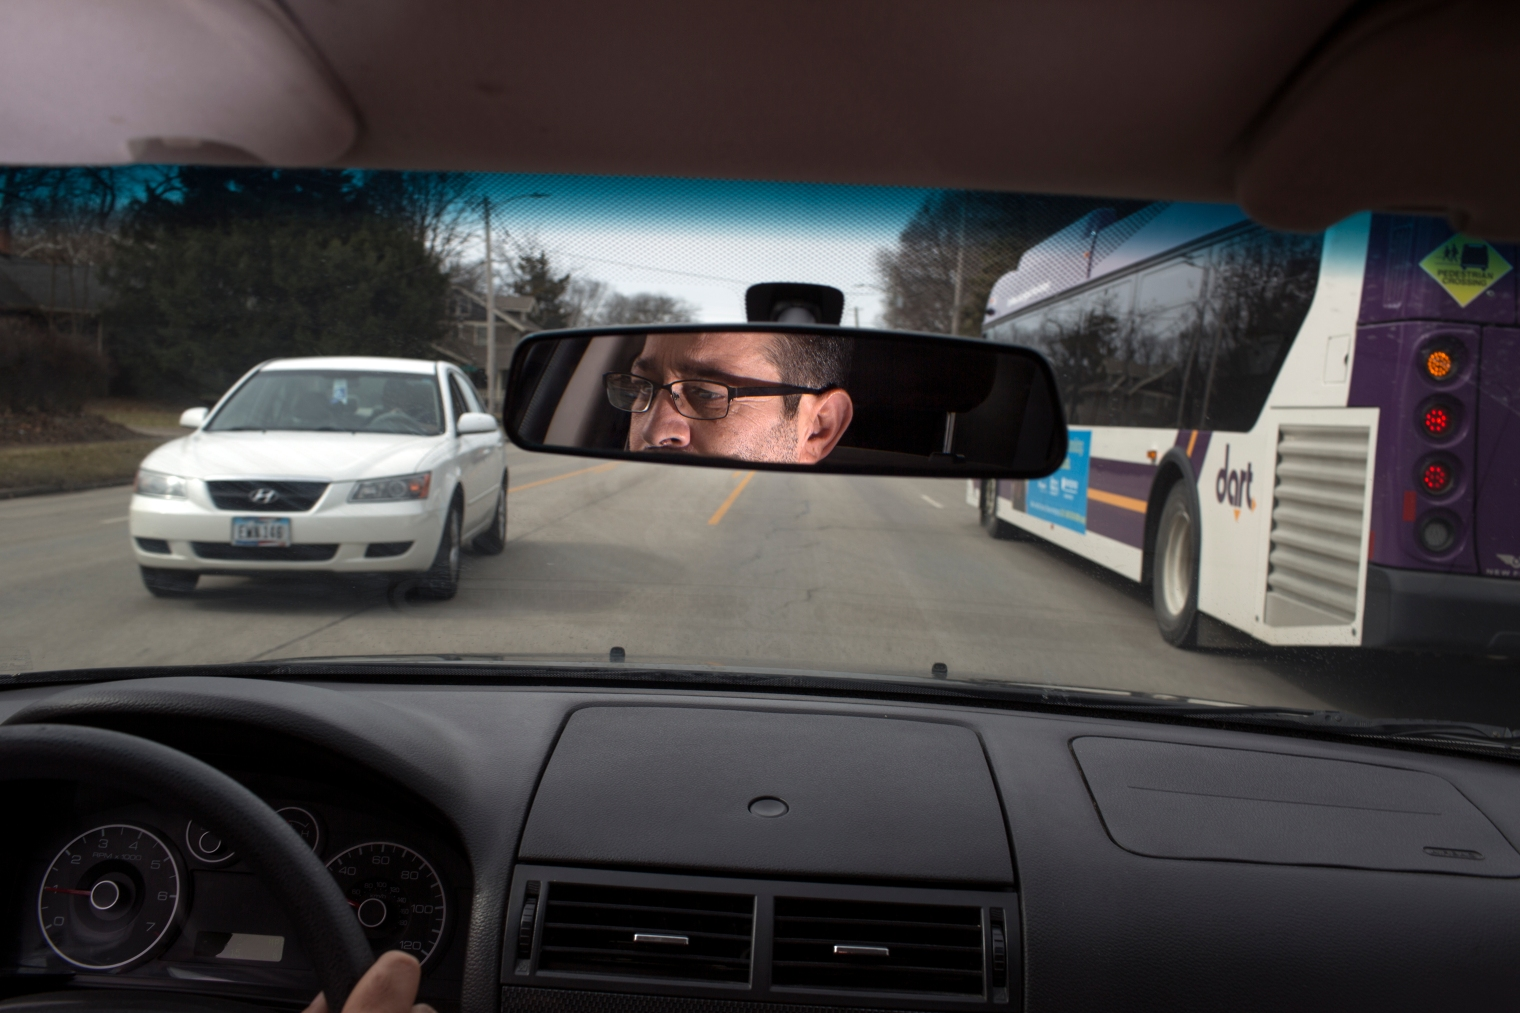 Abdul Fattah Tameem drives to the store in West Des Moines. Abdul Fattah and his wife, Ghazweh Aljabooli, moved their family to West Des Moines, a suburb of Des Moines, Iowa.